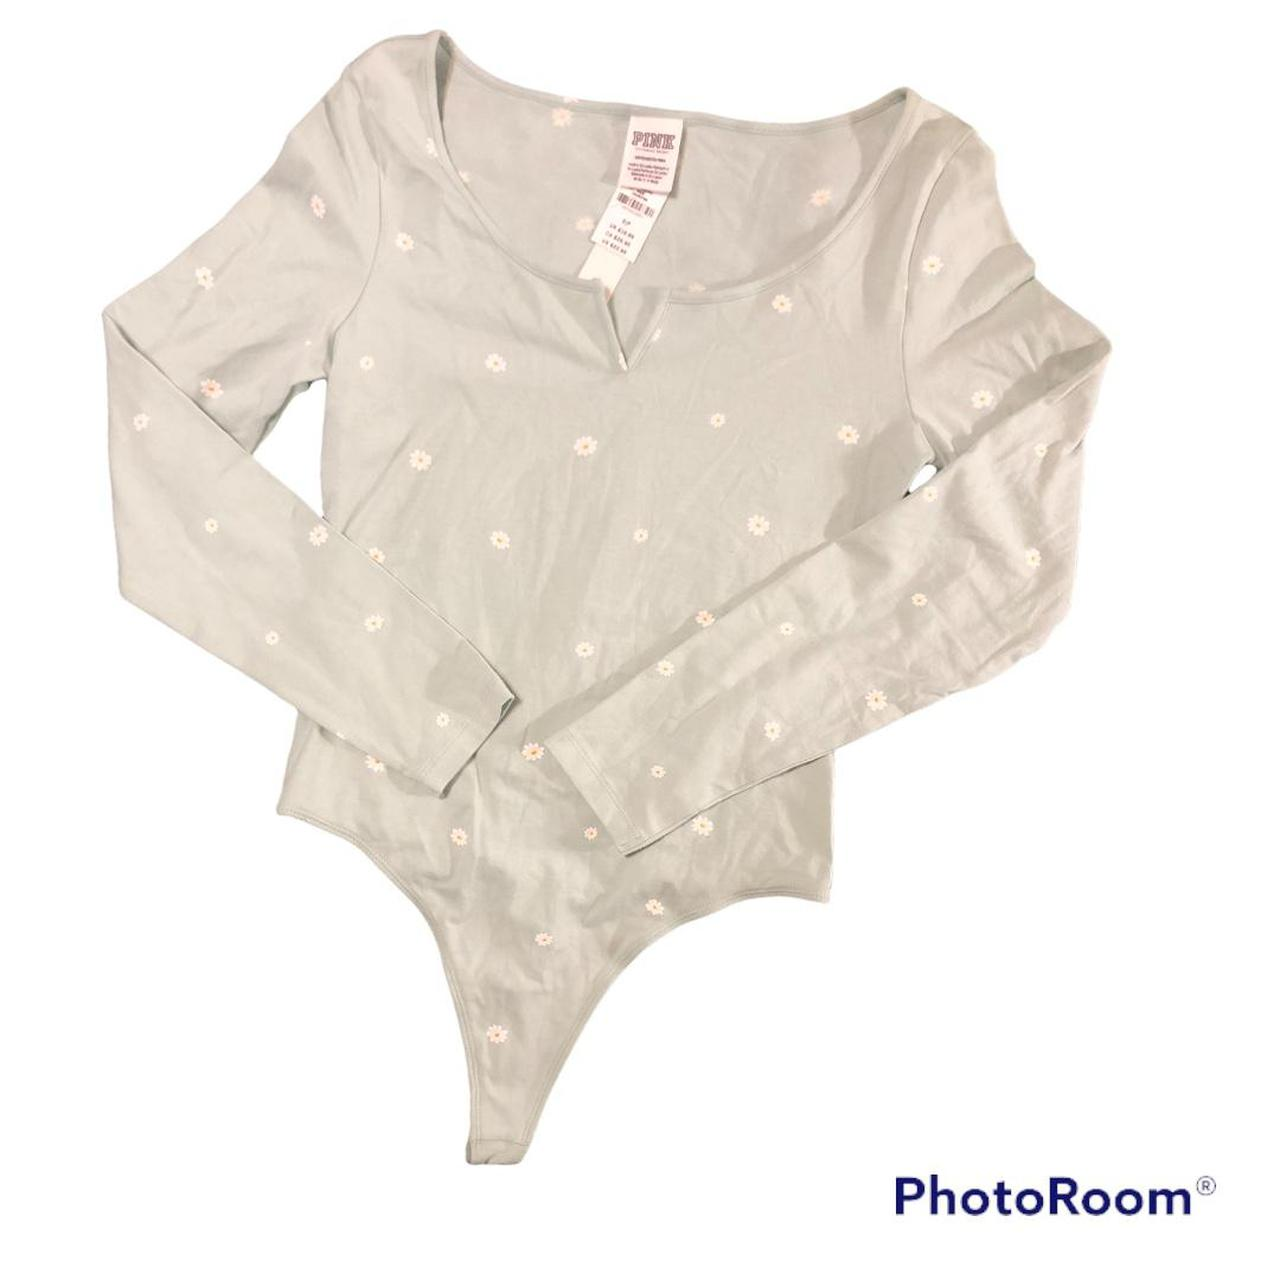 Product Image 1 - Victoria's Secret Pink Long Sleeve